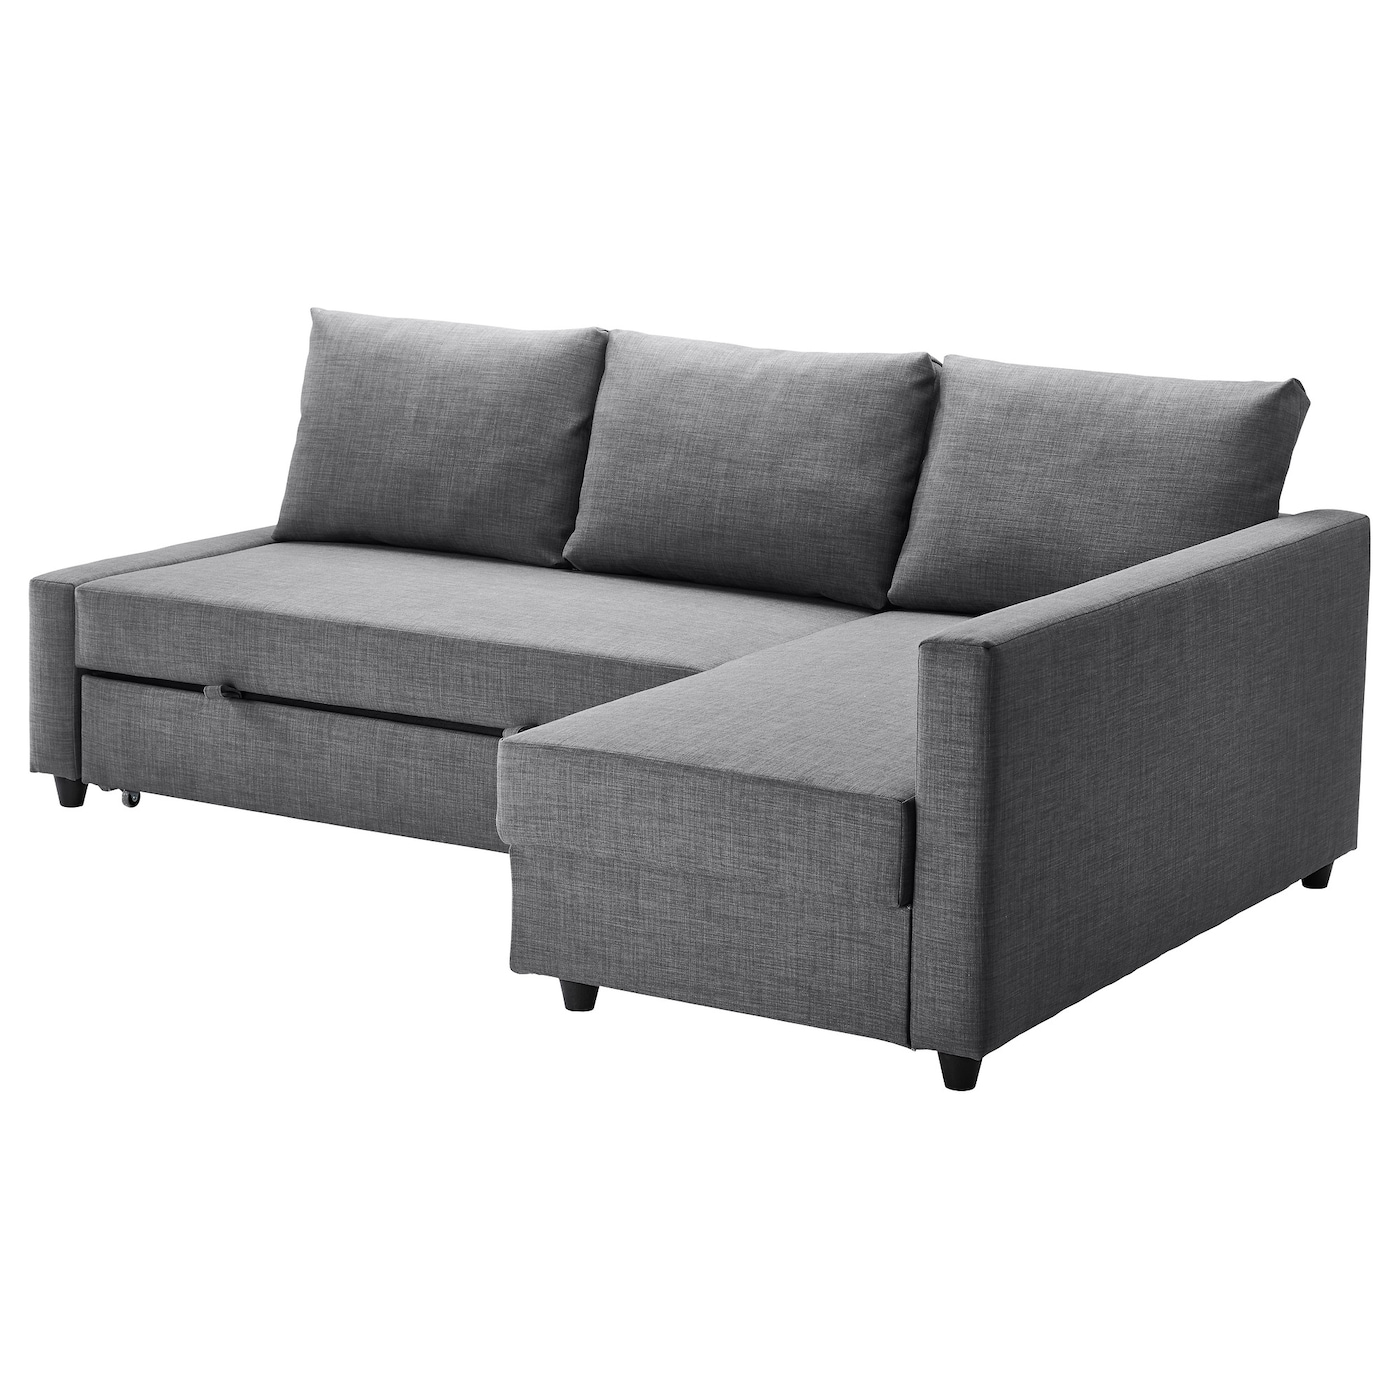 Incroyable FRIHETEN   Corner Sofa Bed With Storage, Skiftebo Dark Grey